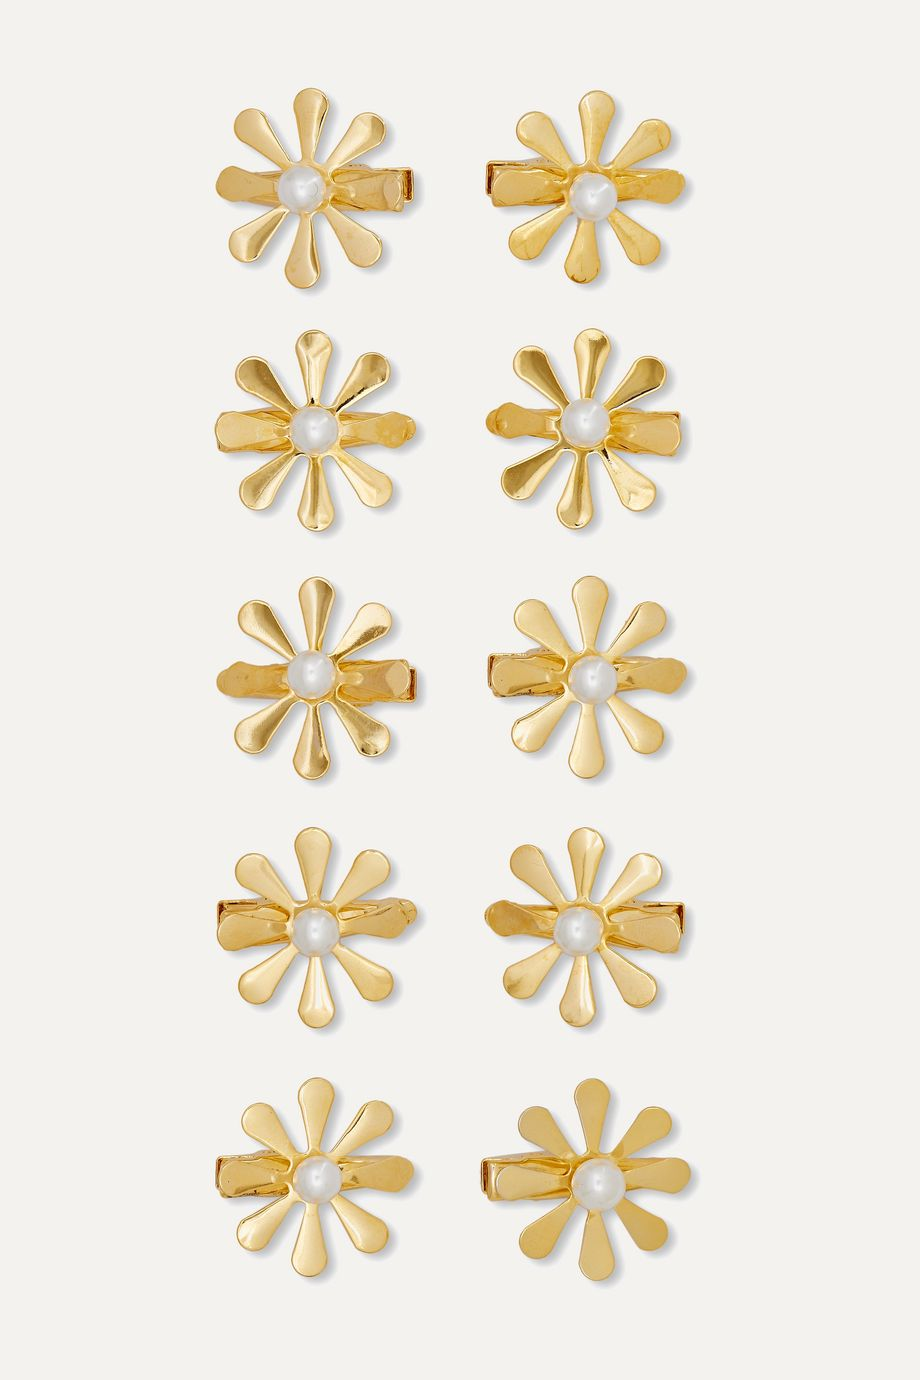 LELET NY + The Haute Pursuit set of 10 gold-tone and faux pearl hair slides